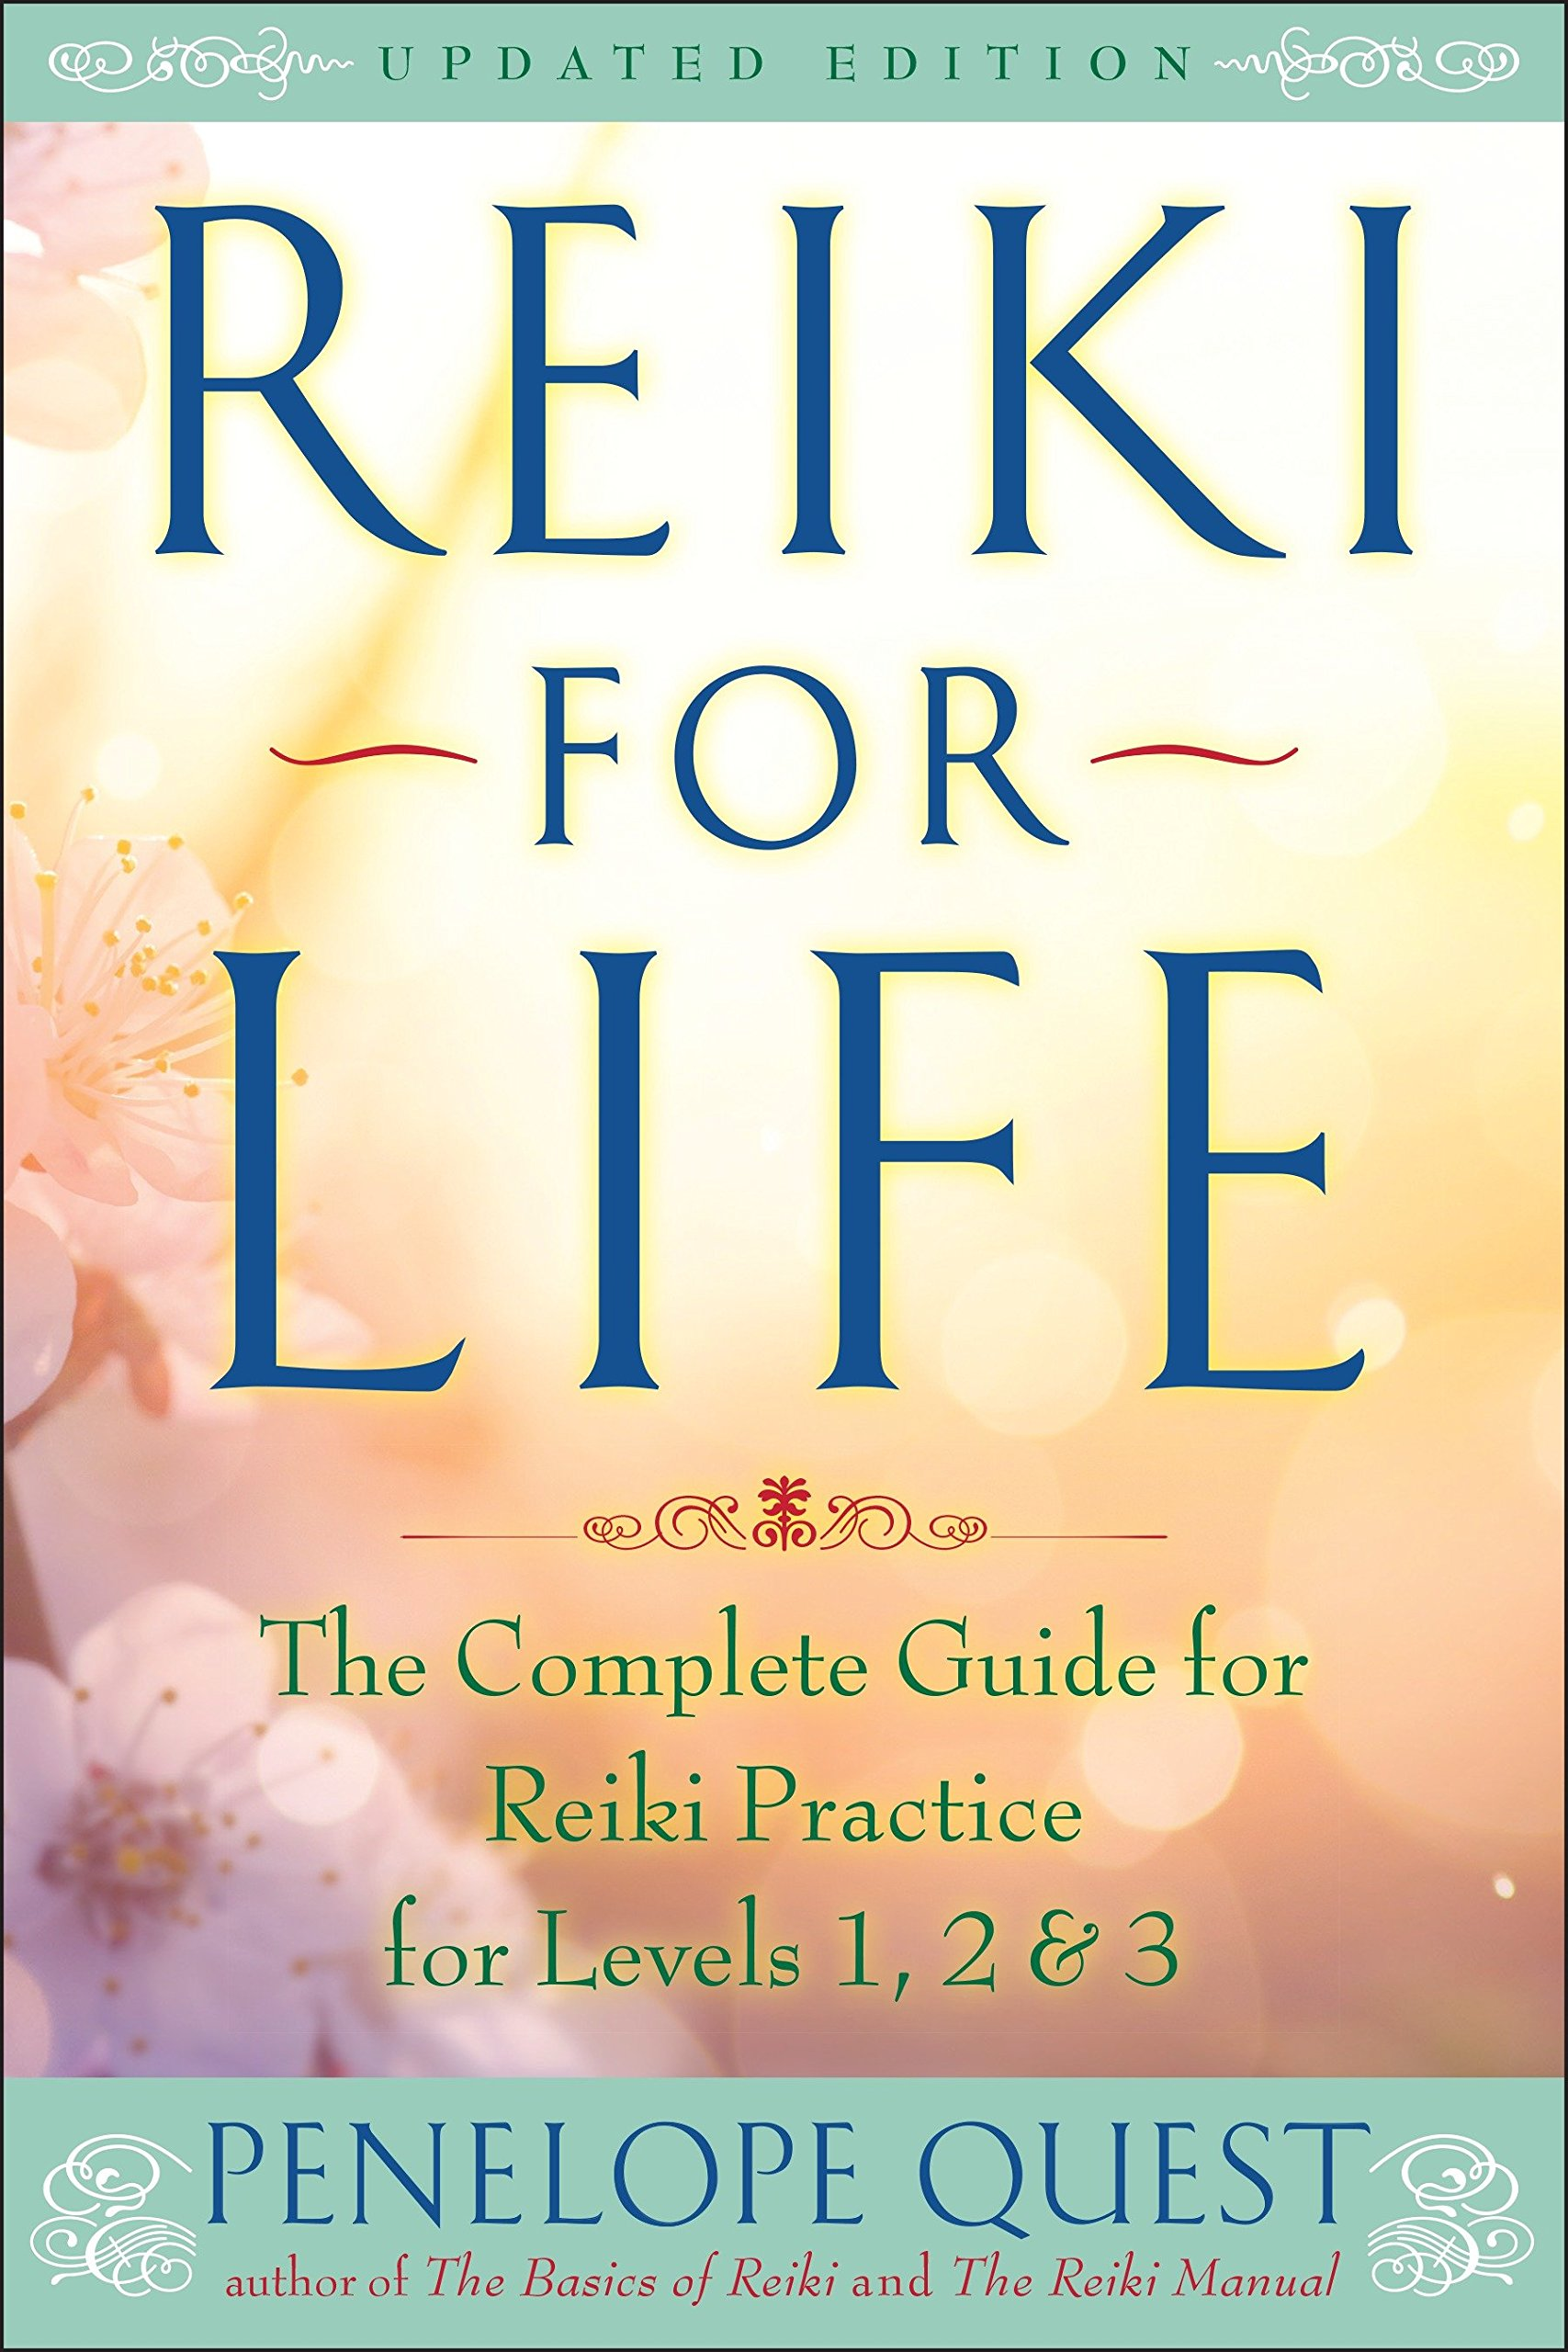 Reiki for Life (Updated Edition): The Complete Guide to Reiki Practice for  Levels 1, 2 & 3: Penelope Quest: 9781101983263: Amazon.com: Books